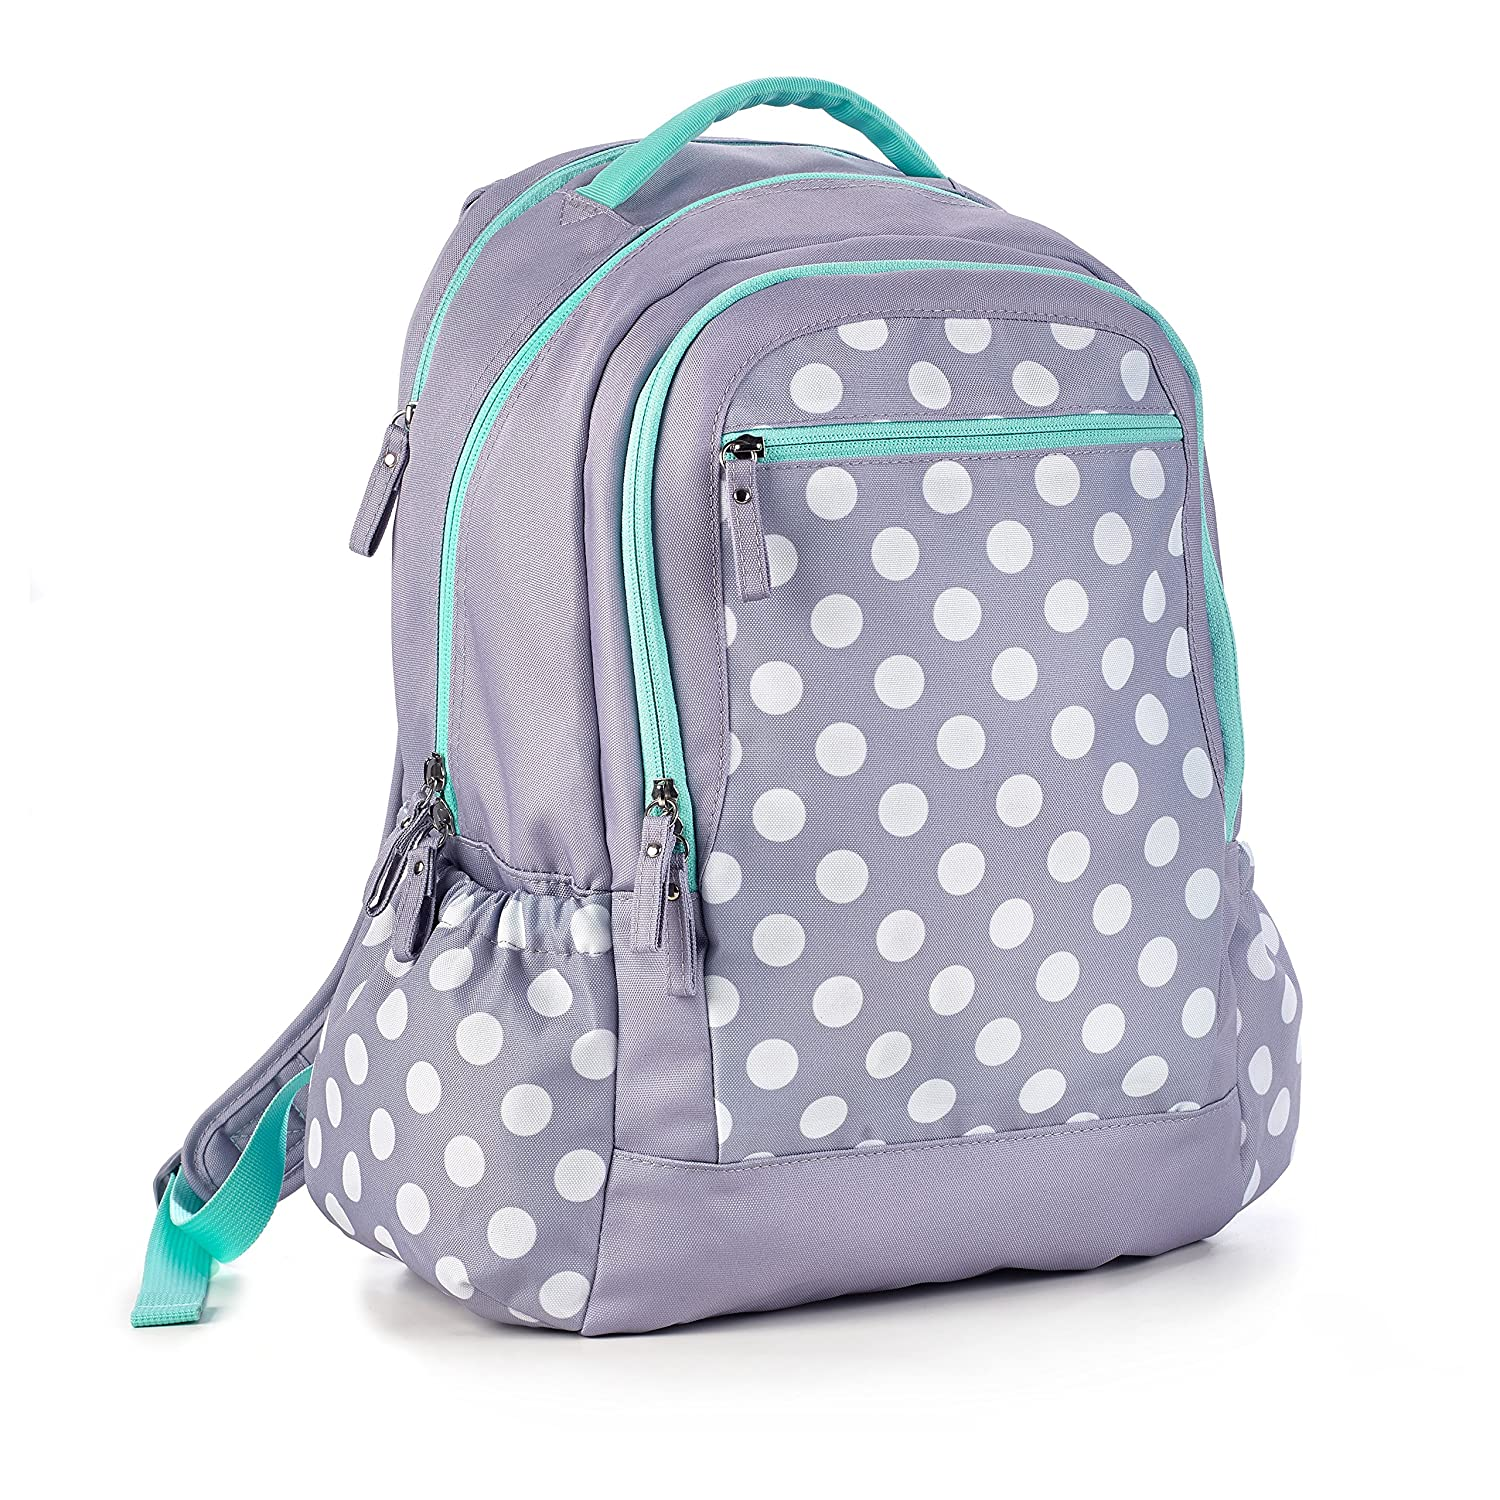 ffeeea700892 lovely Studio C Backpack - xn--rbt32bx2etrm.com